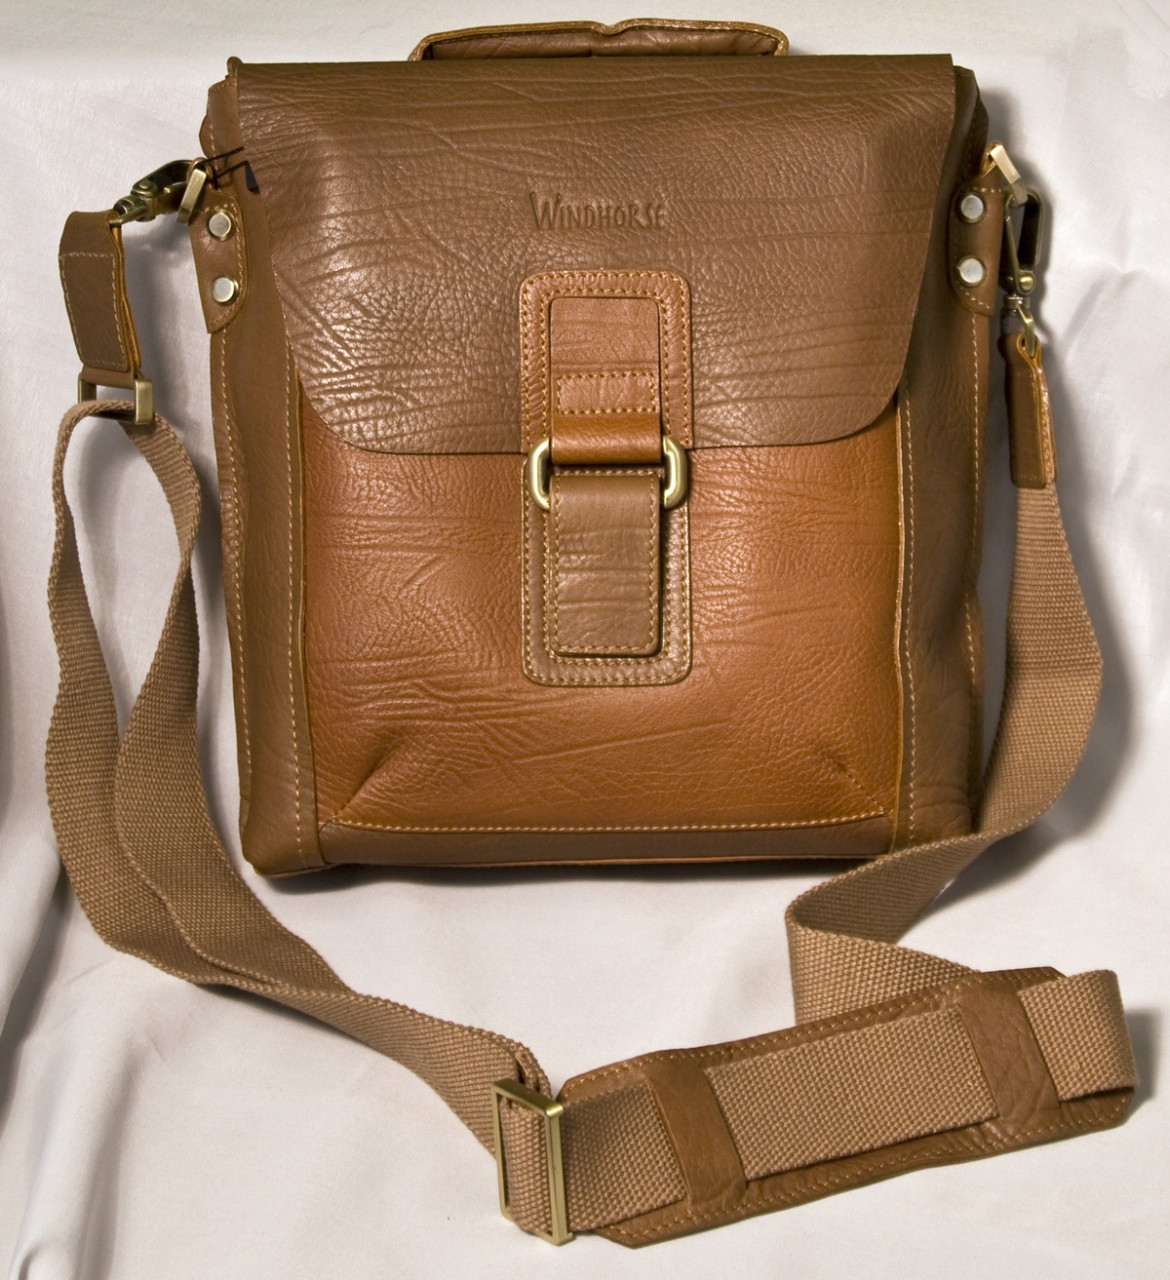 e5a62f84805a Loading zoom. This beautiful leather bag ...